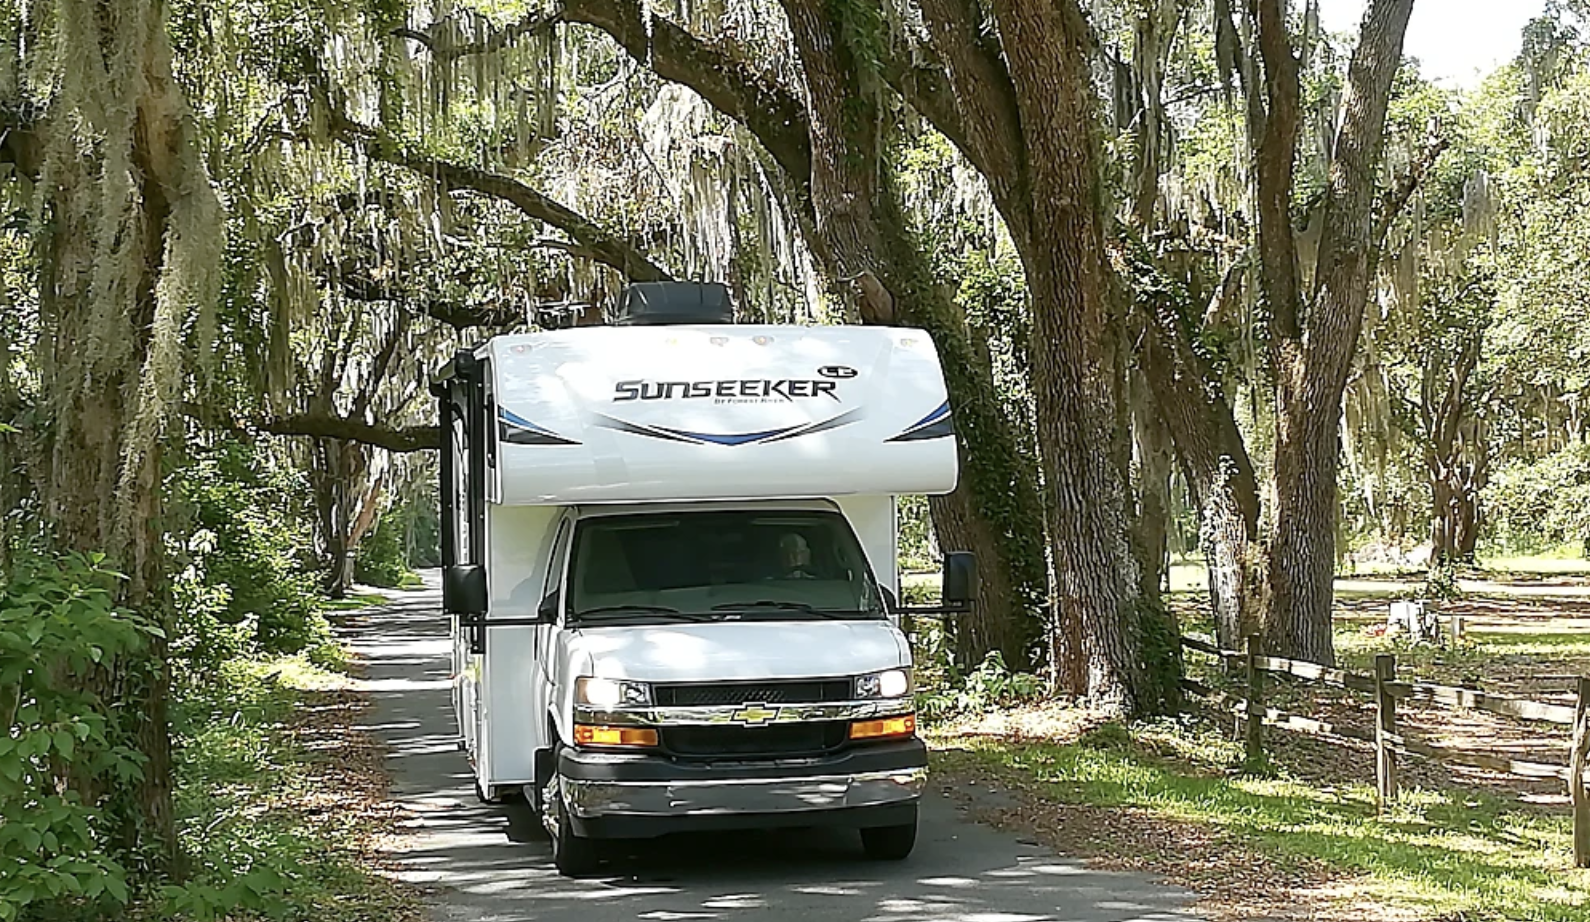 These Family Sized Rvs Are Rentable And Ready To Hit The Road Southern Living